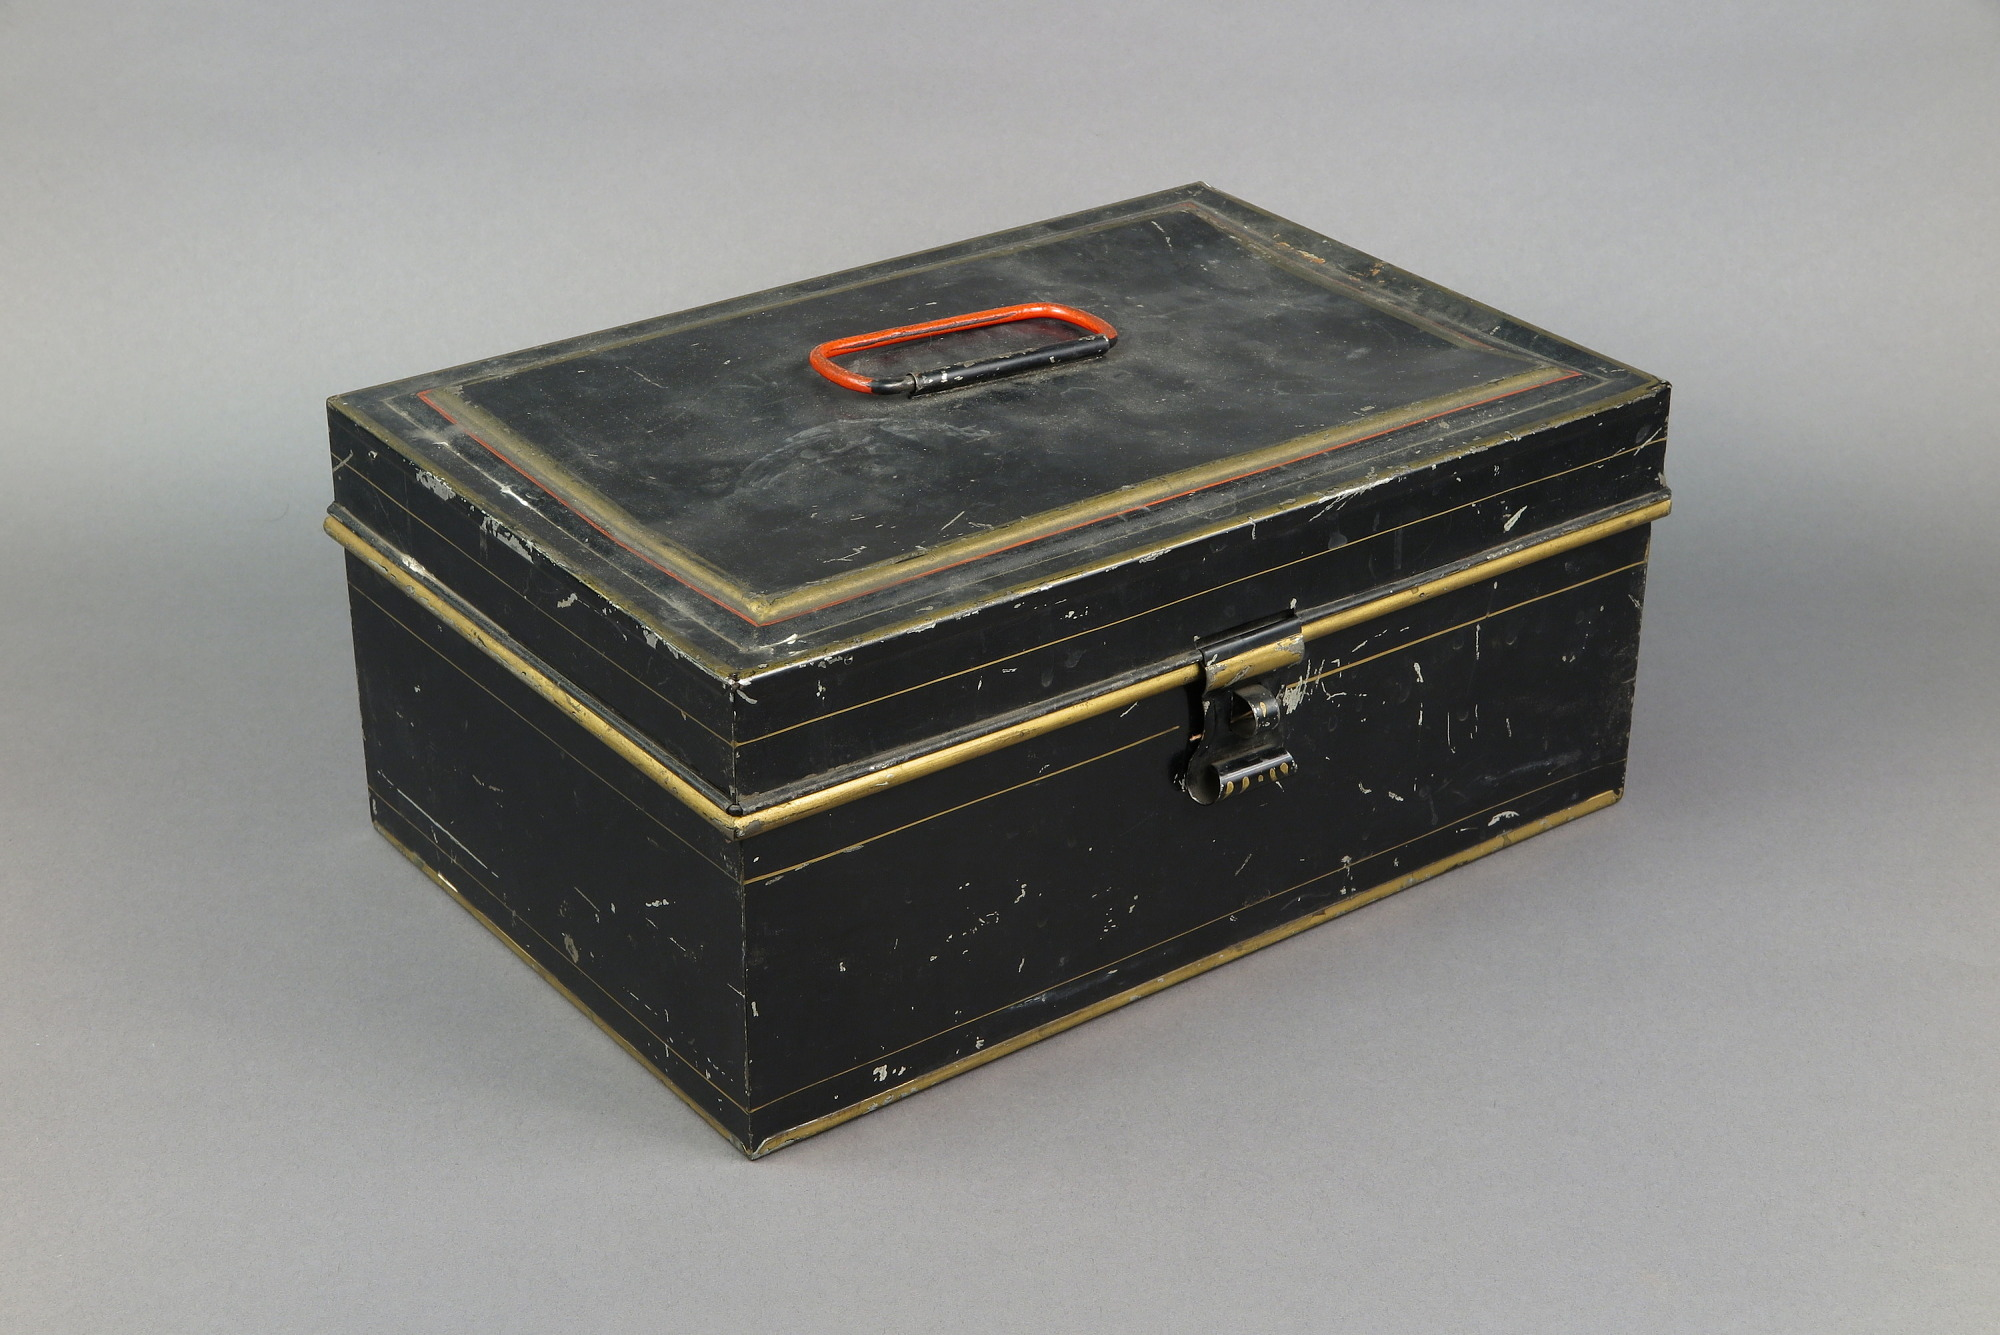 Case for Surgical Instruments Belonging to Dr. William Park